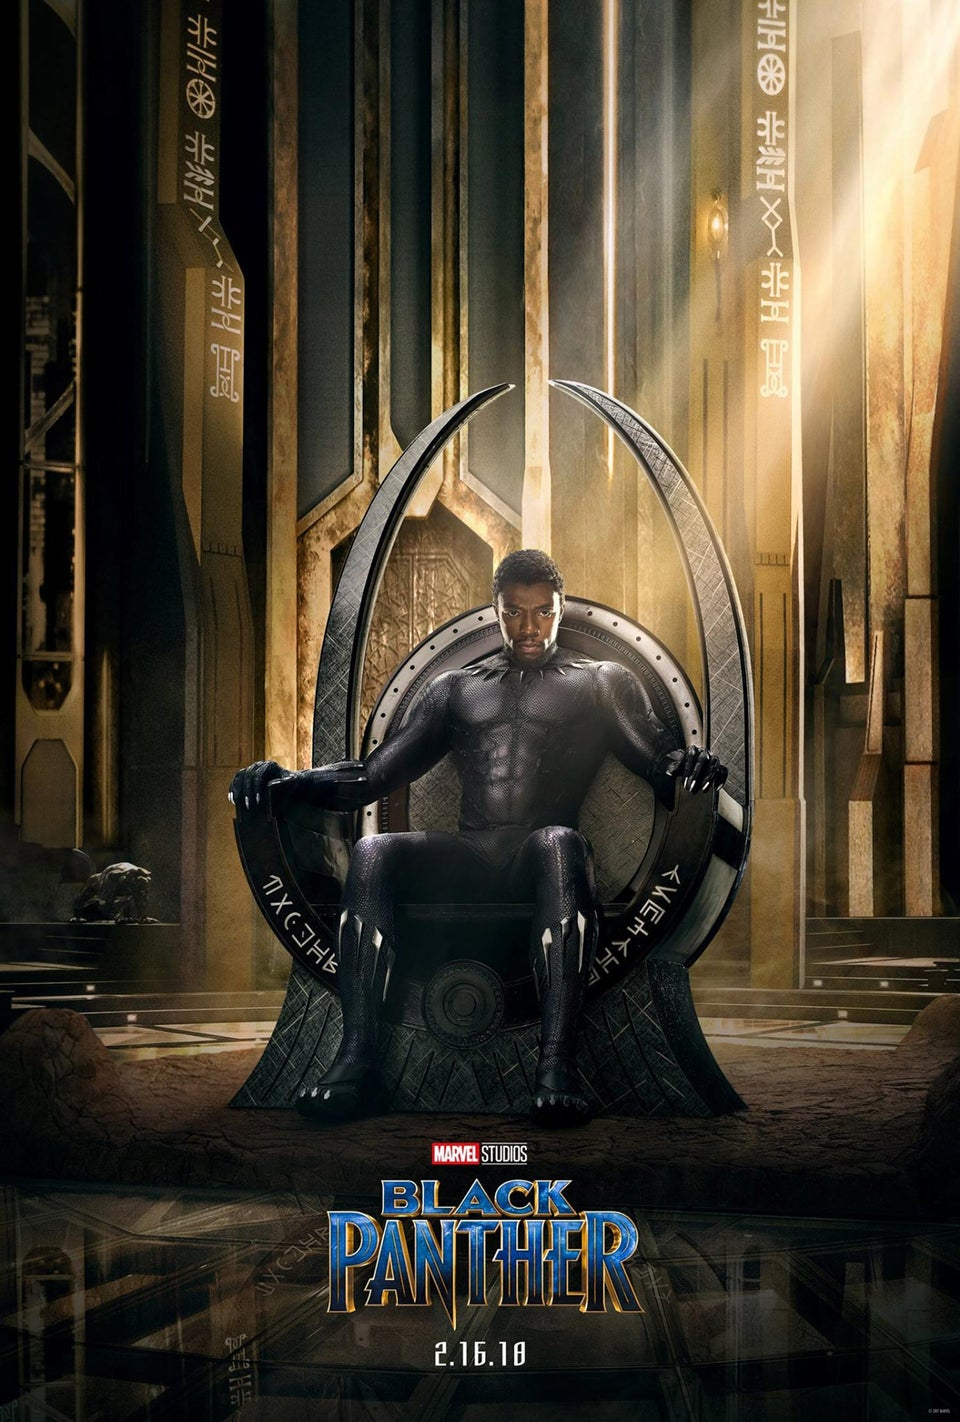 'Black Panther' Is Set To Make Marvel Movie History